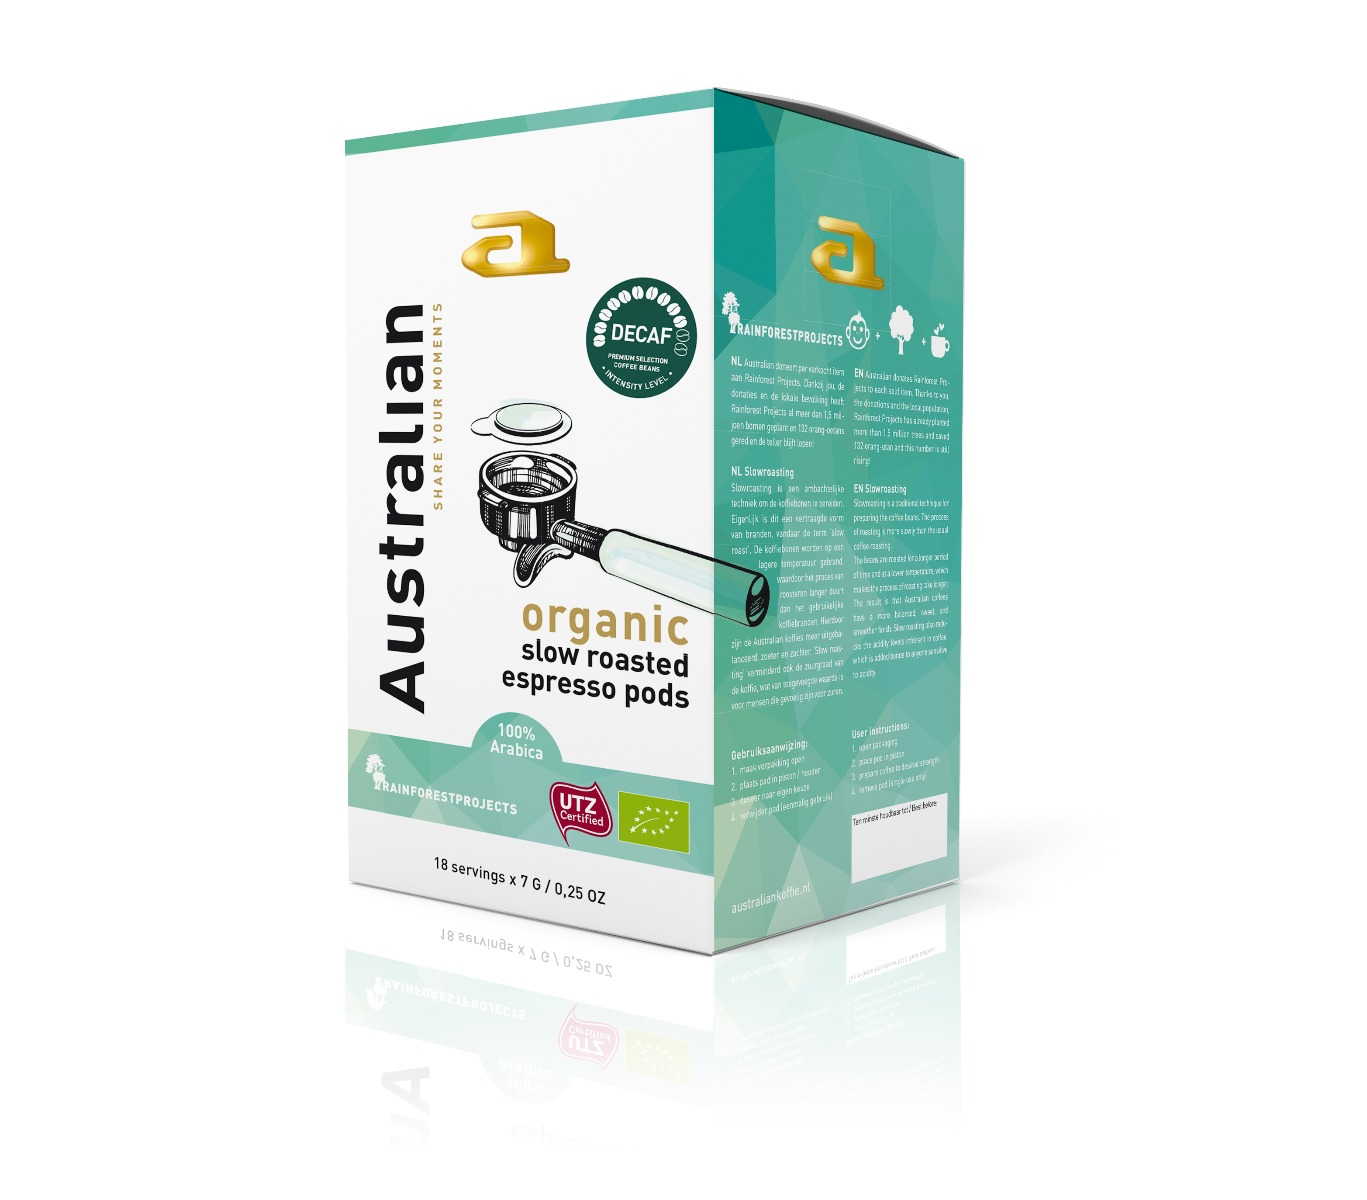 Australian - E.S.E. Servings - Decaf Roast (Organic)